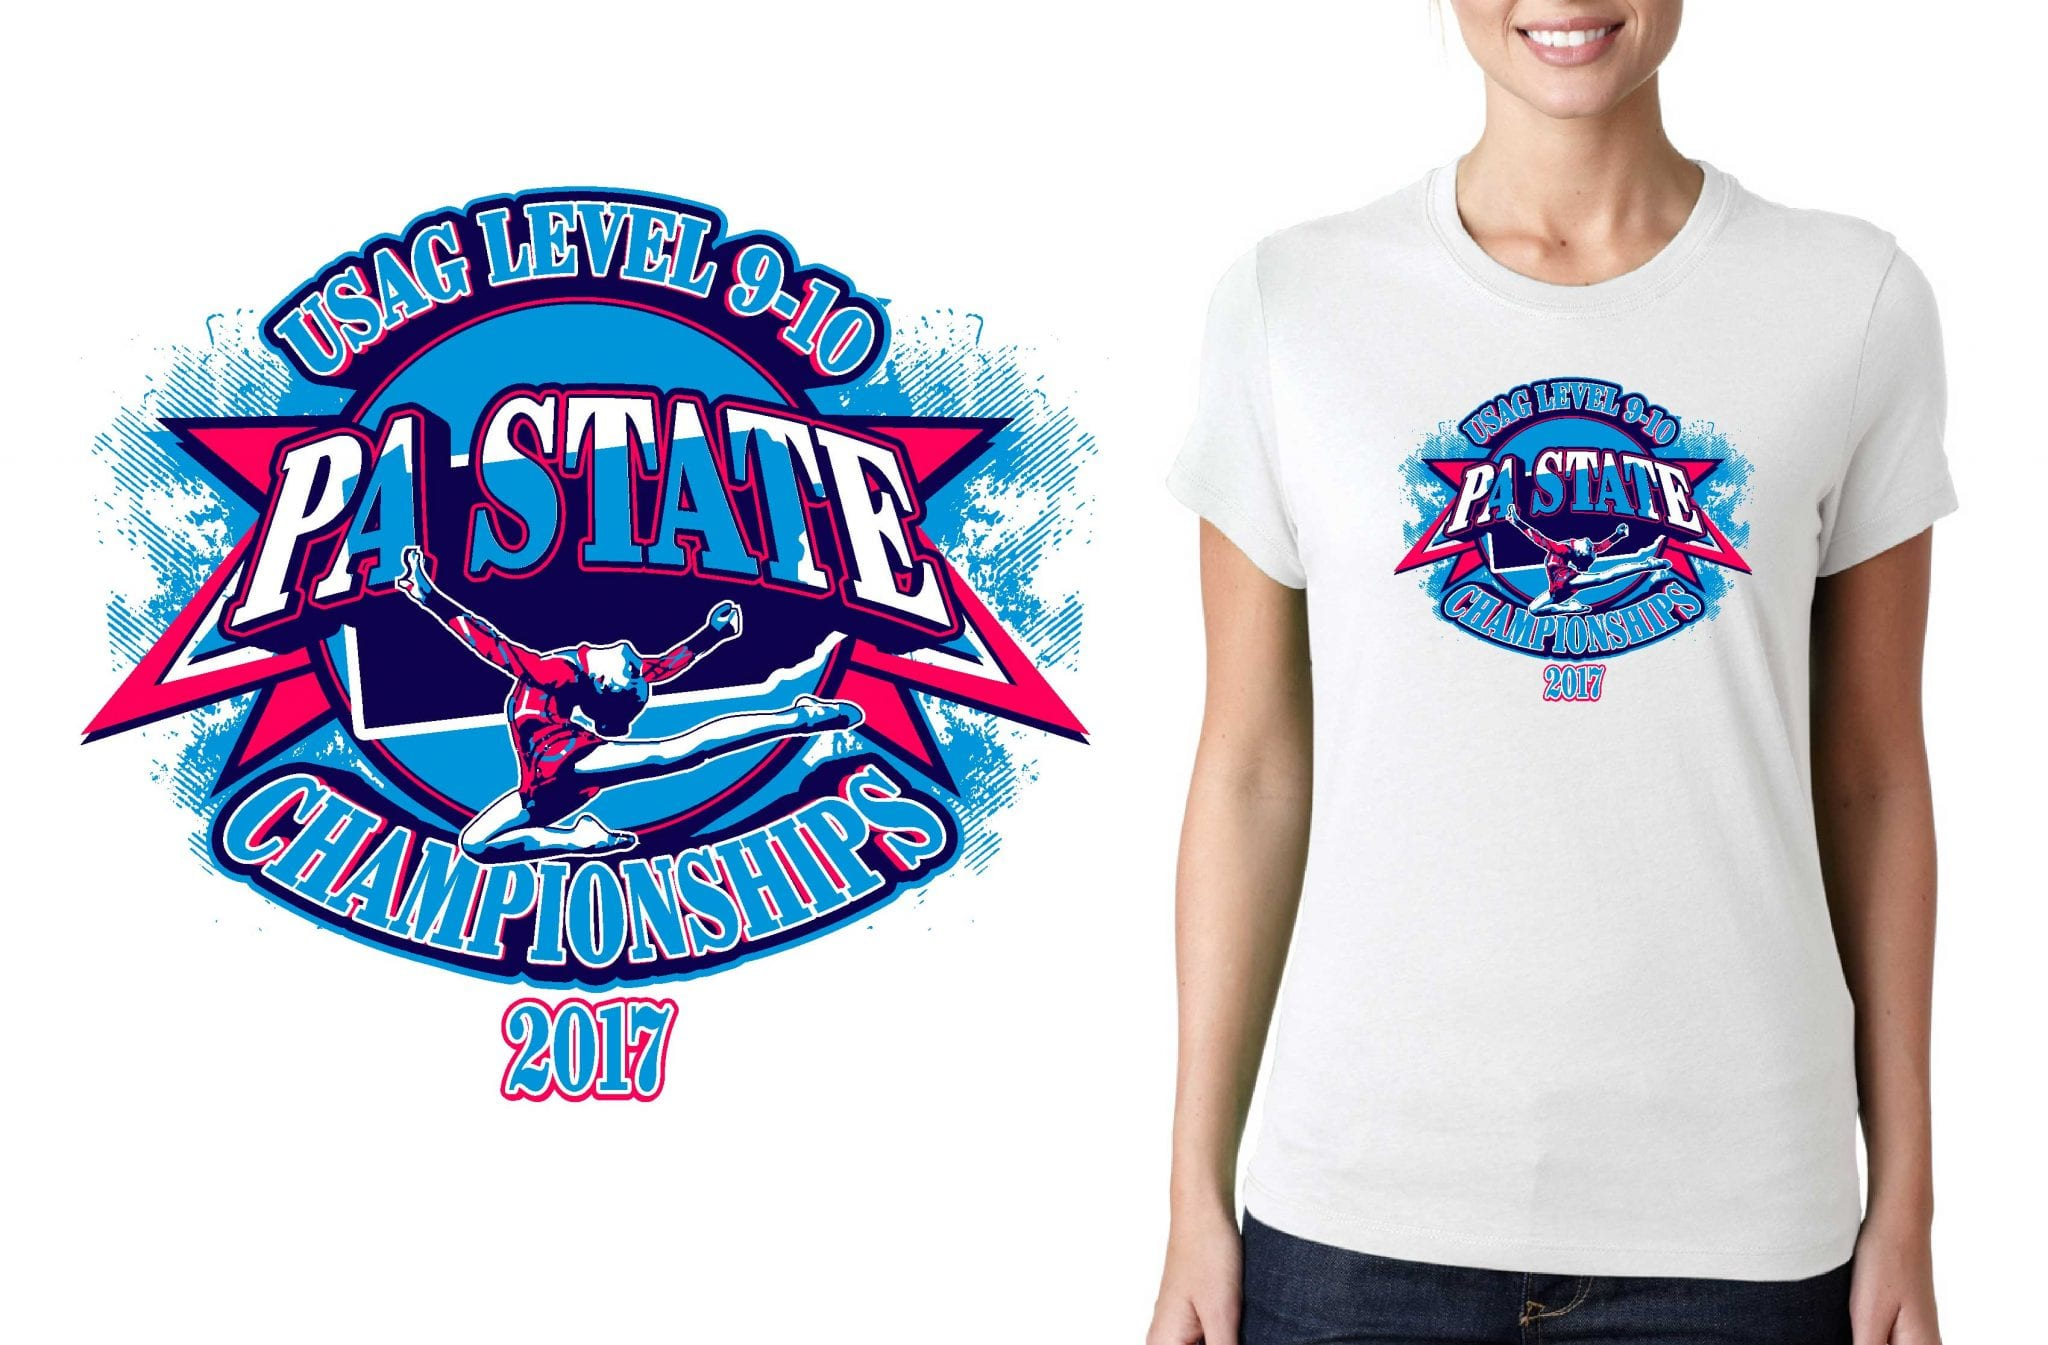 2017 Level 9 10 PA State Championships vector logo design for t-shirt gymnastics urartstudio.com